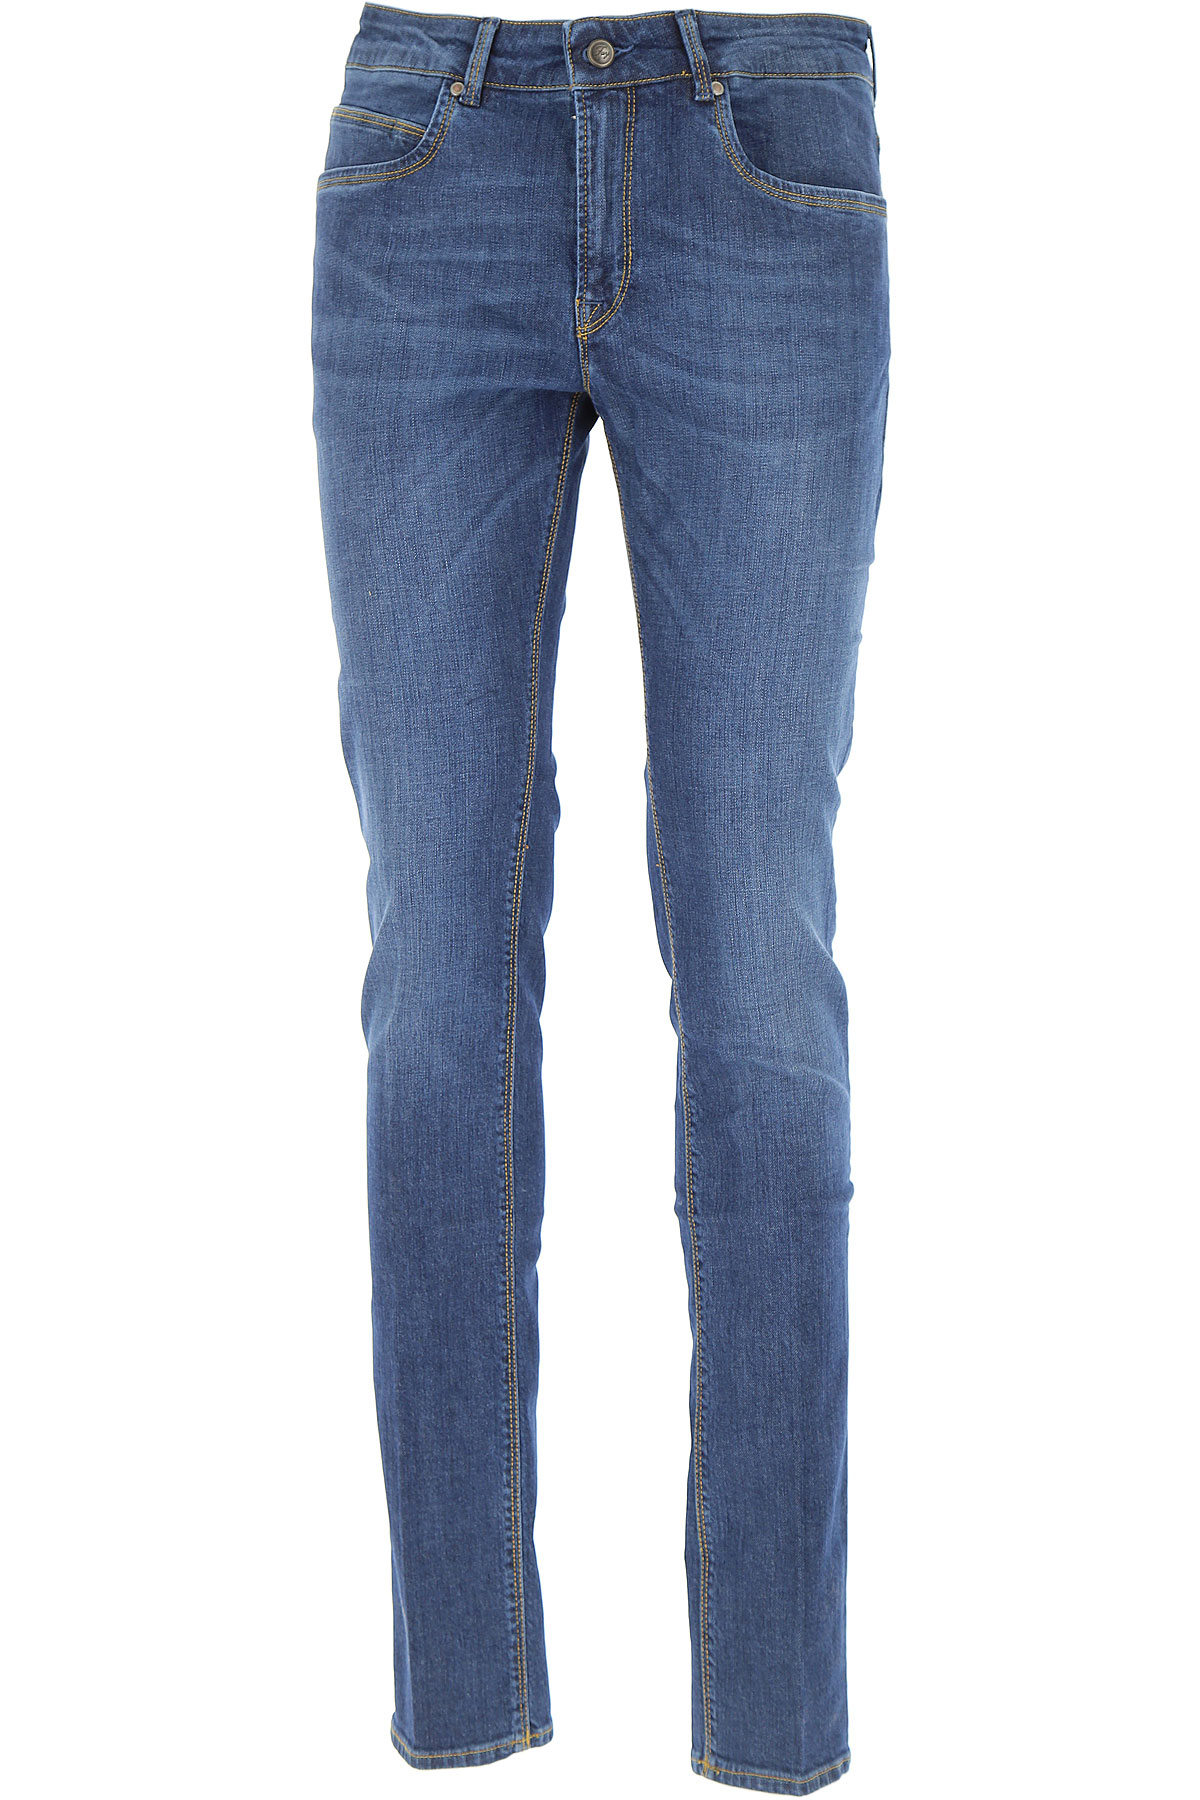 Fay Jeans On Sale, Denim Blue, Cotton, 2017, 32 33 34 35 38